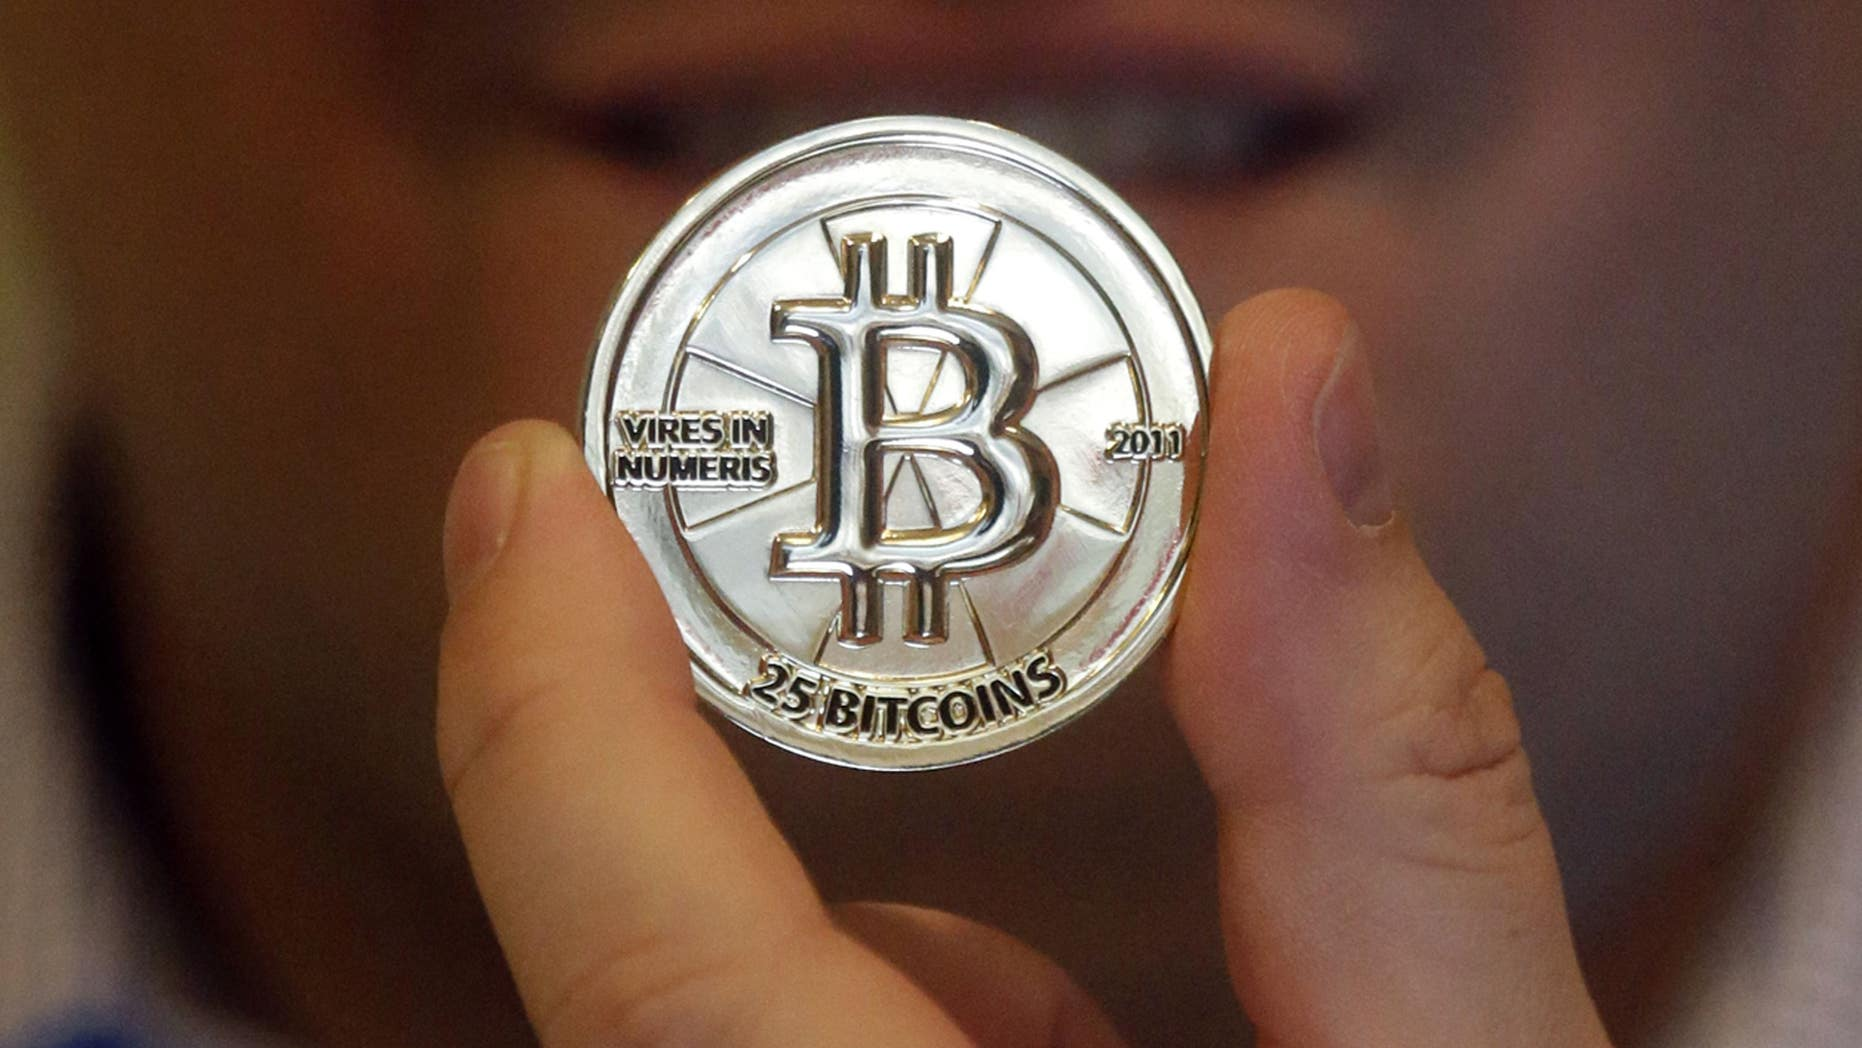 A 25 Bitcoin token is seen in Sandy, Utah.